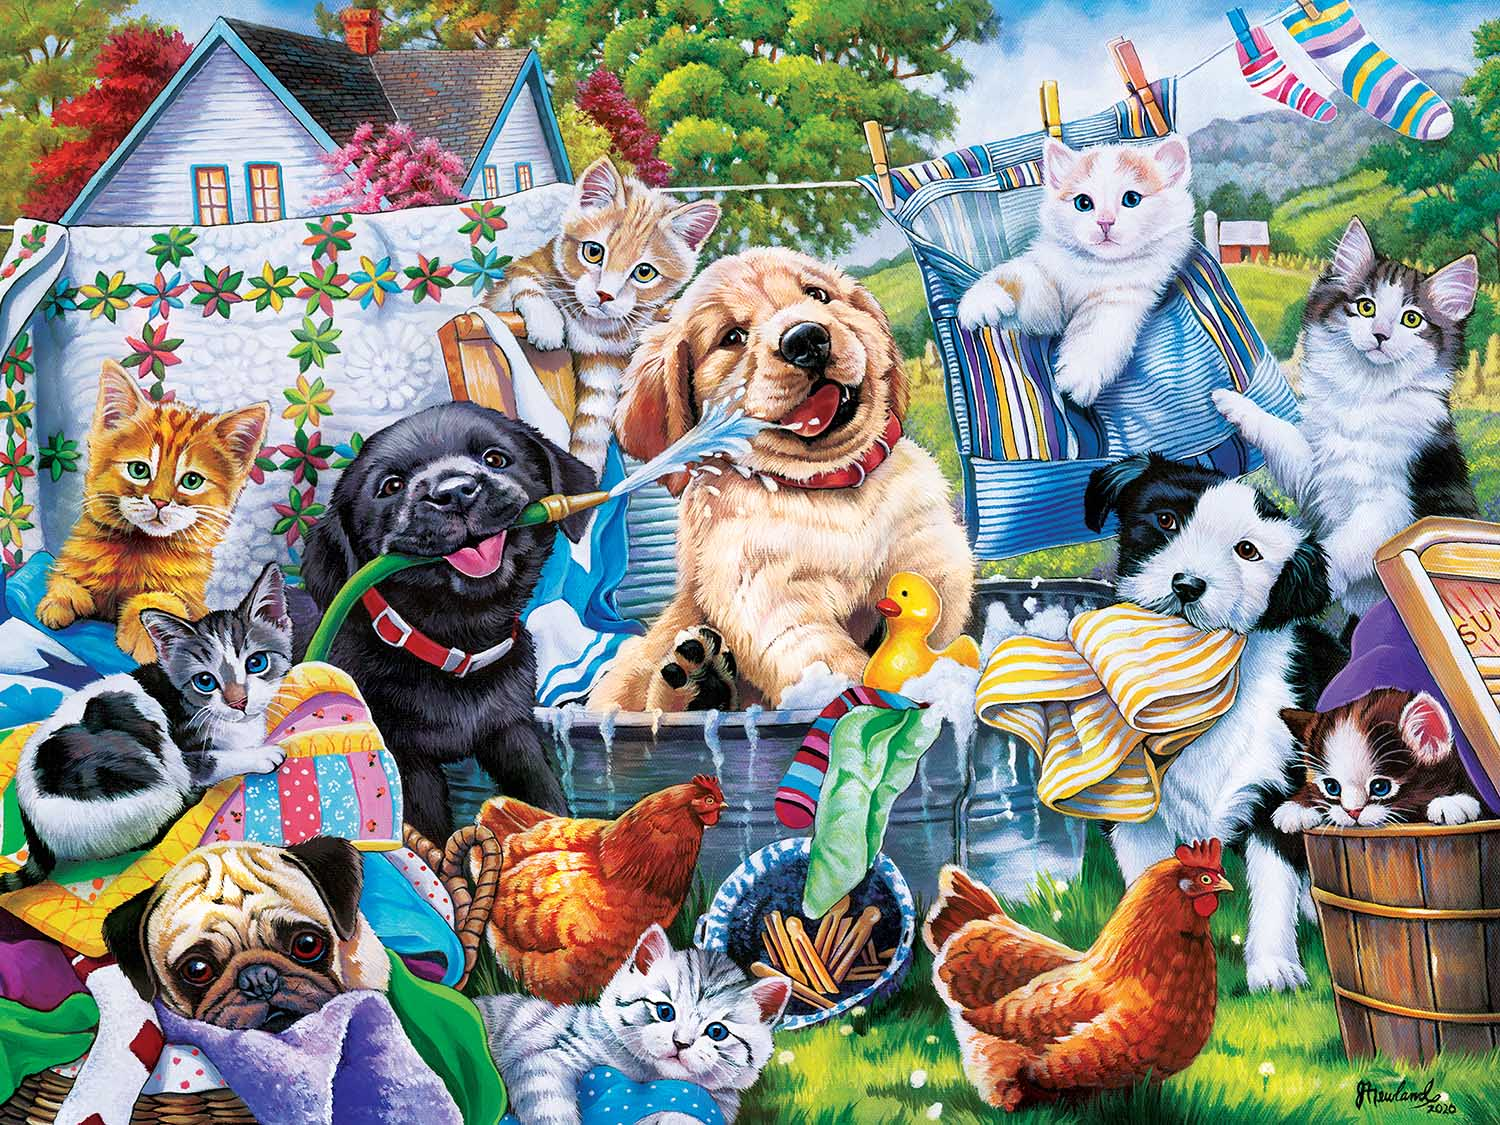 Washing Time Cats Jigsaw Puzzle